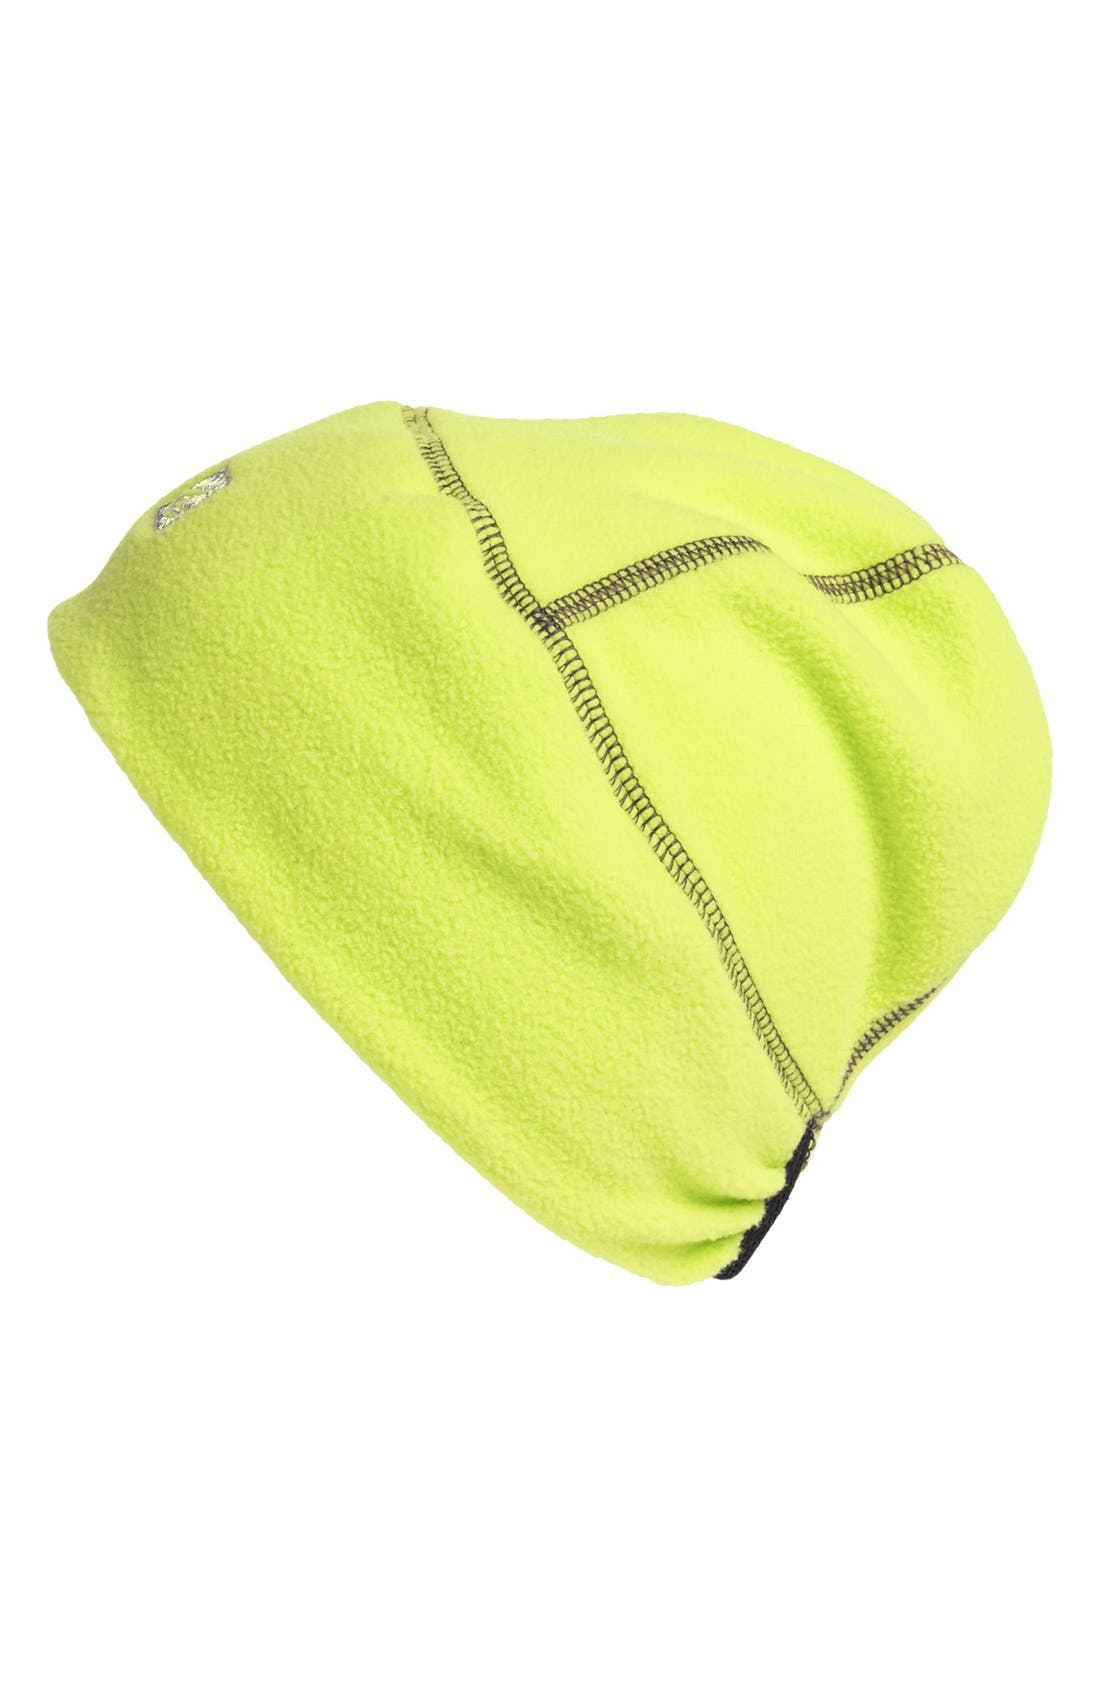 Alternate Image 1 Selected - Sperry Top-Sider® Fleece Beanie